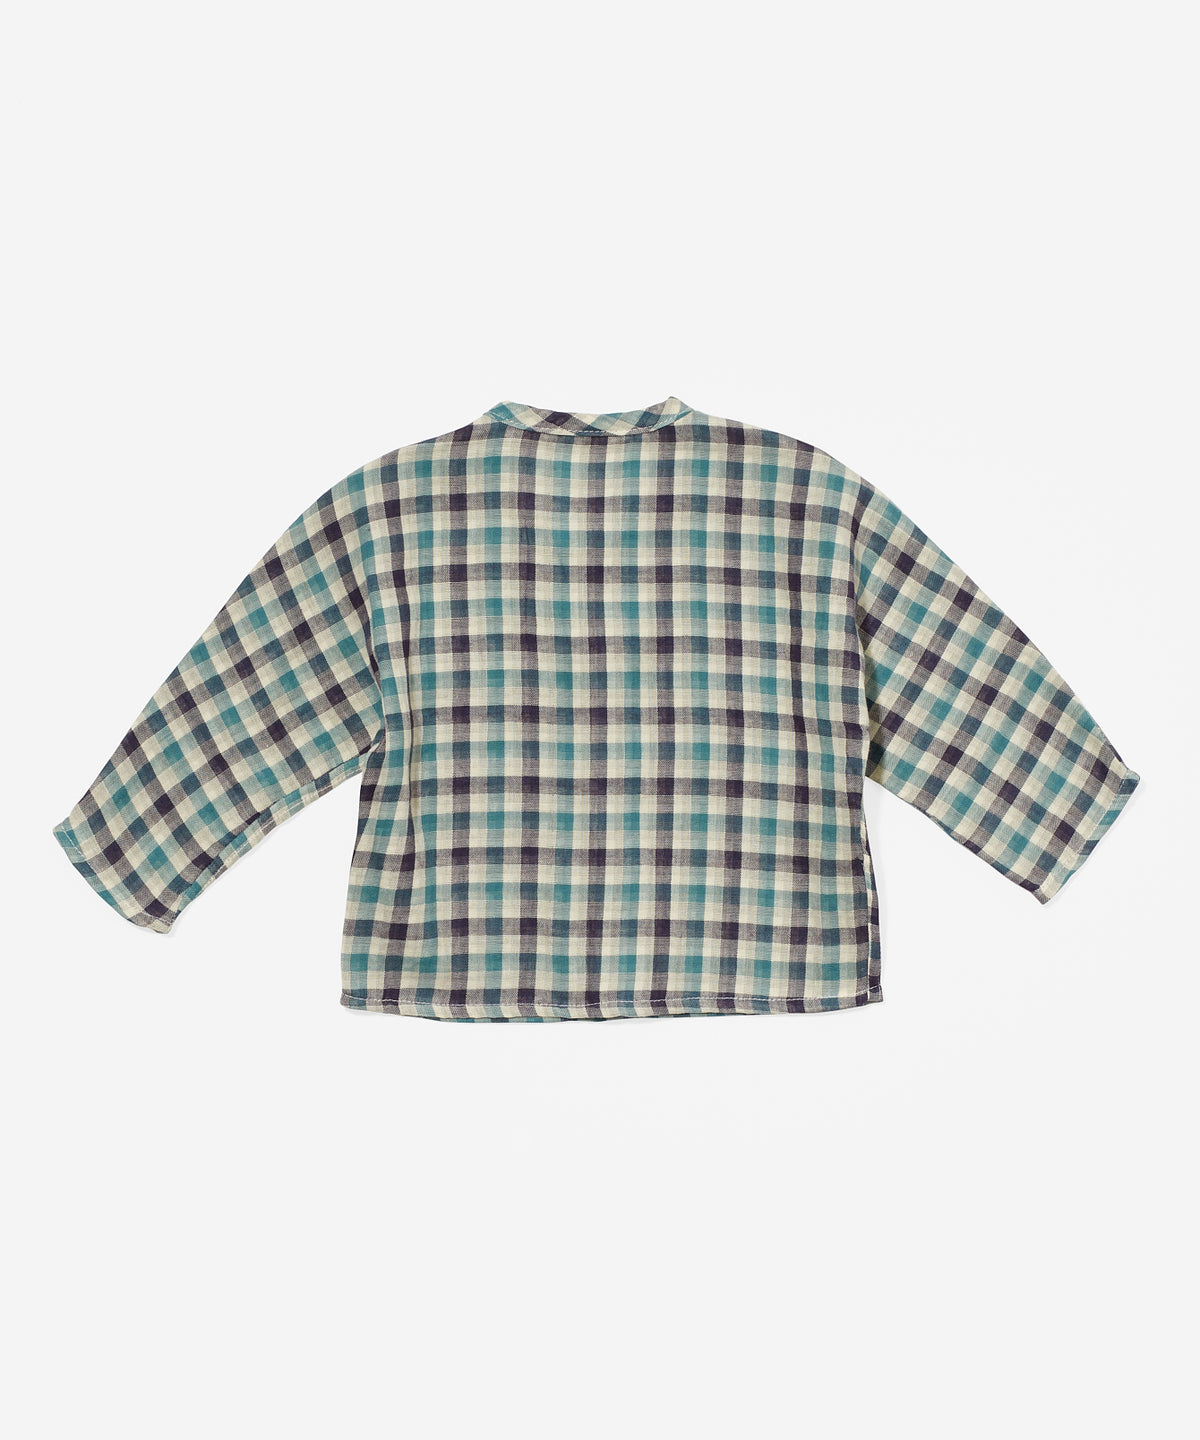 Jack Lee Baby Shirt, Teal Plaid